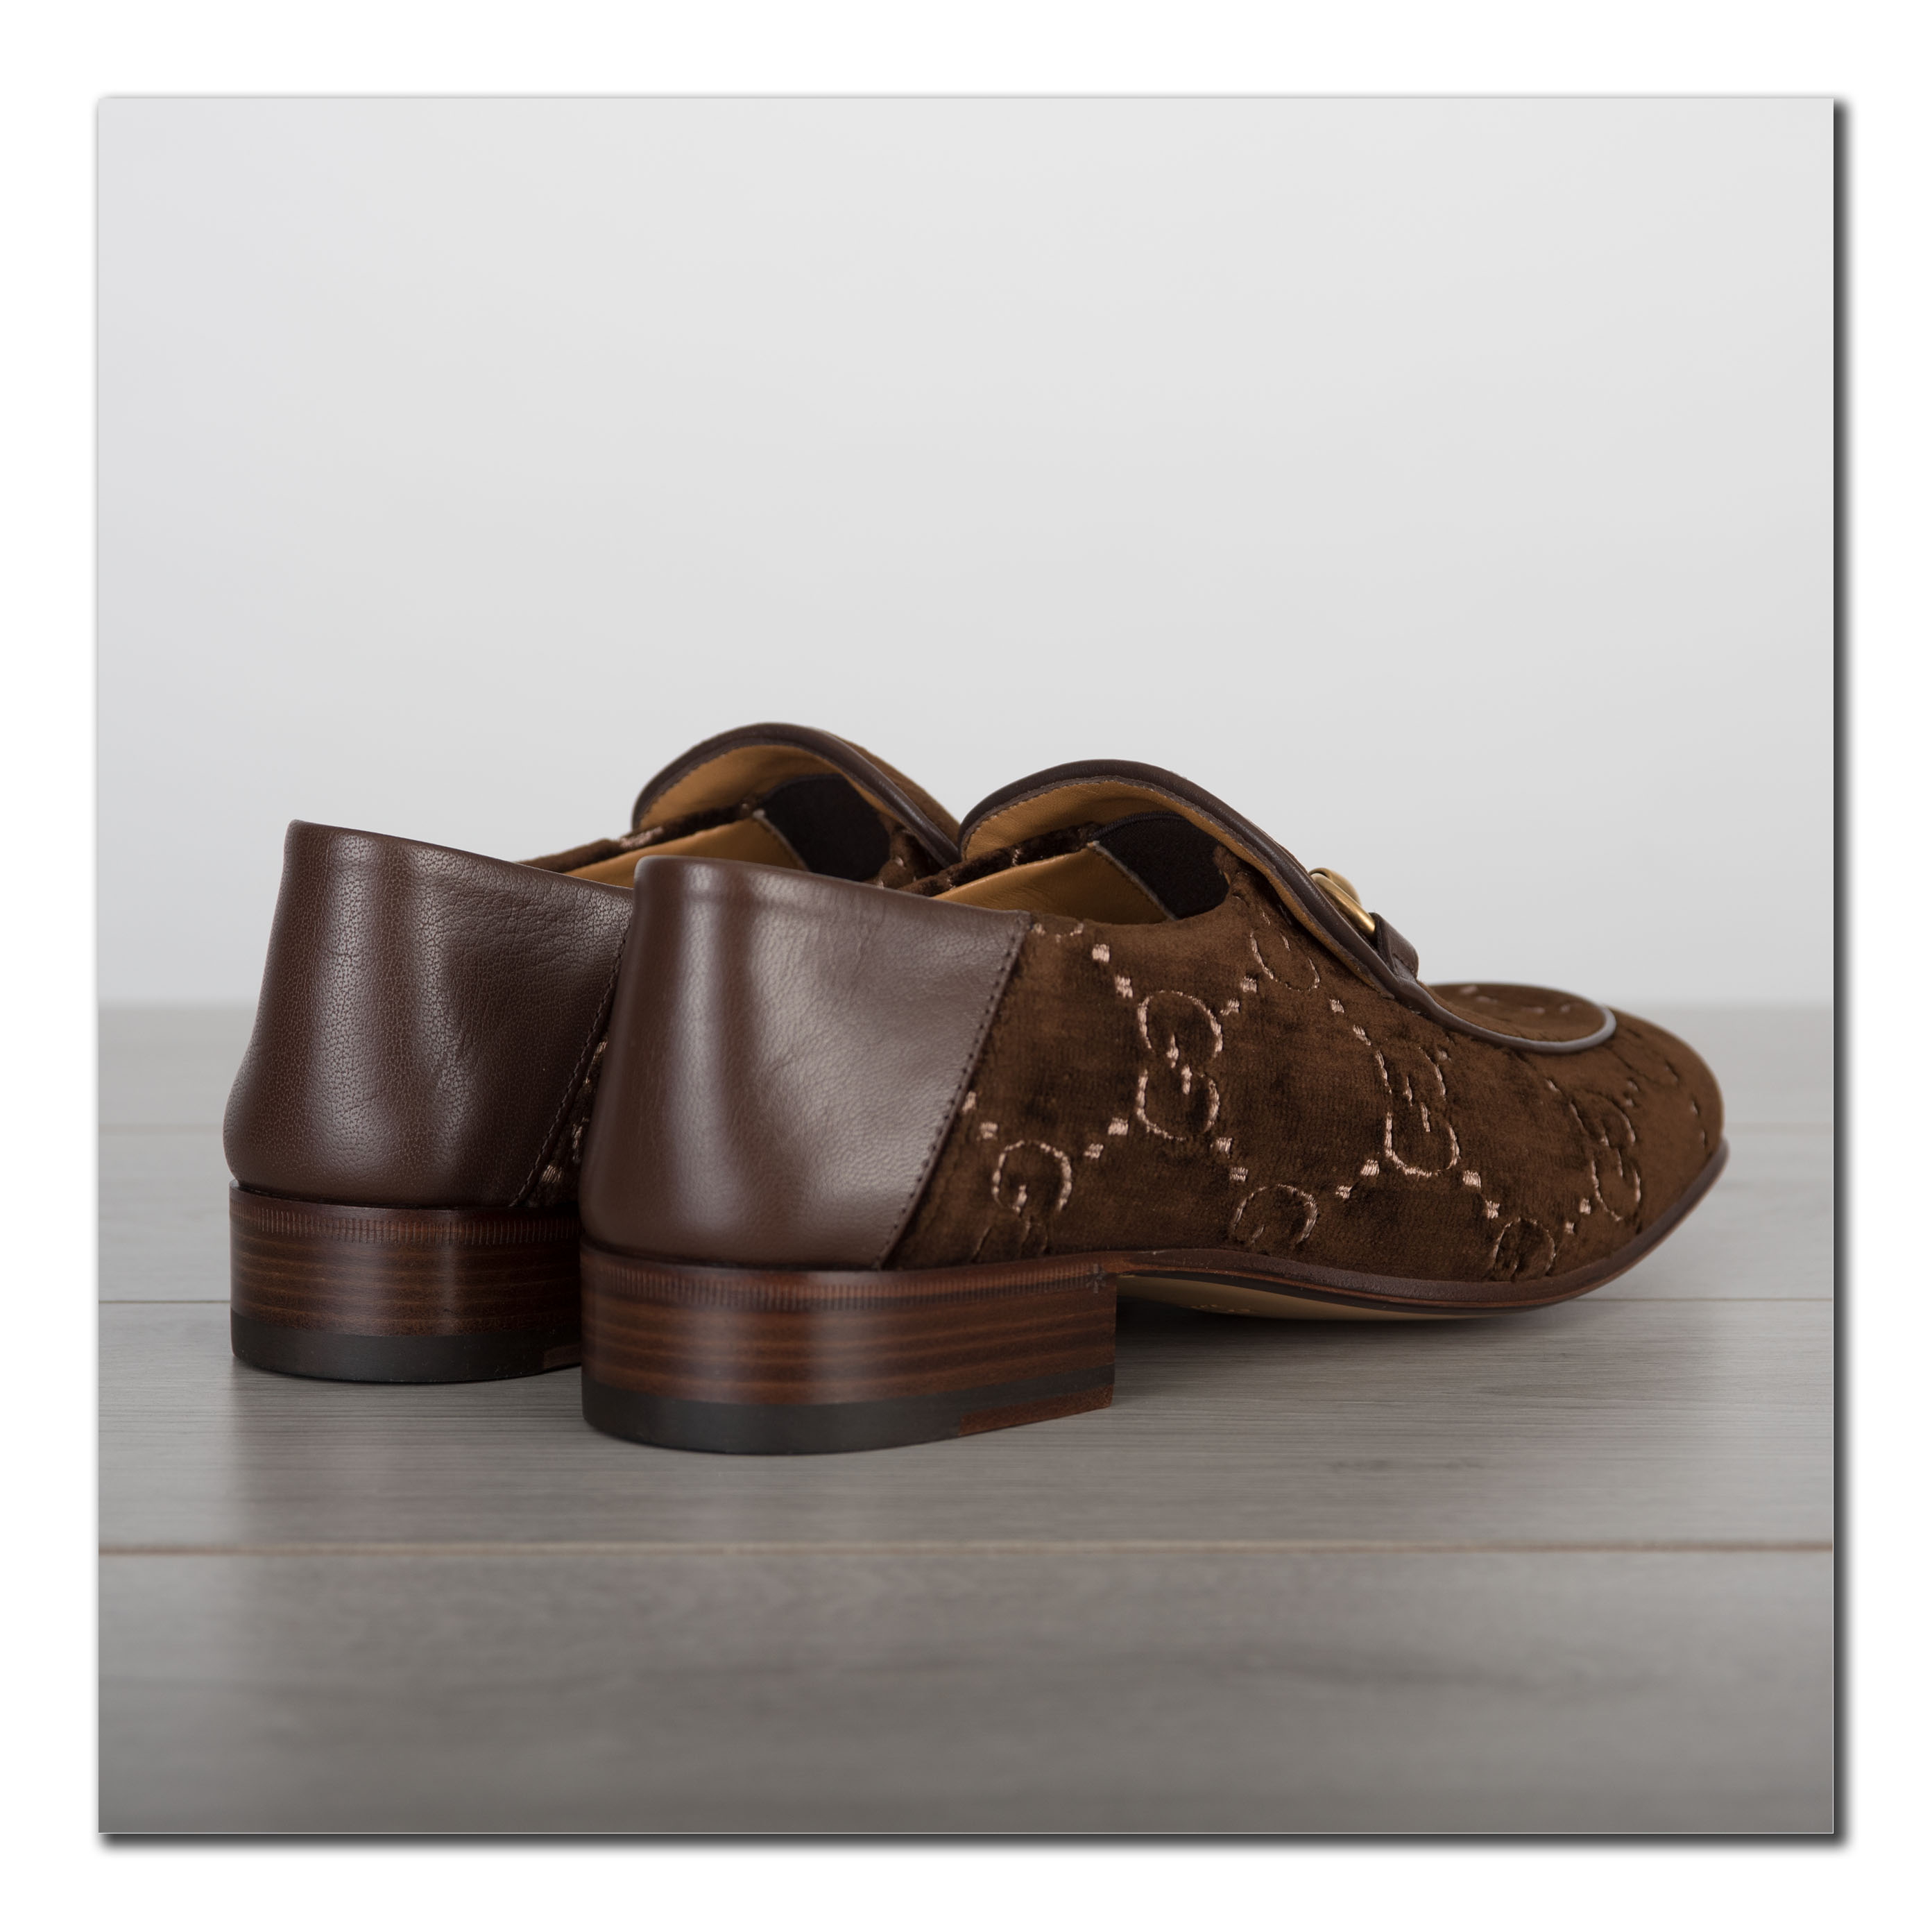 fdc19f16815 GUCCI 850  Authentic New Horsebit Loafers In GG Brown Velvet With ...